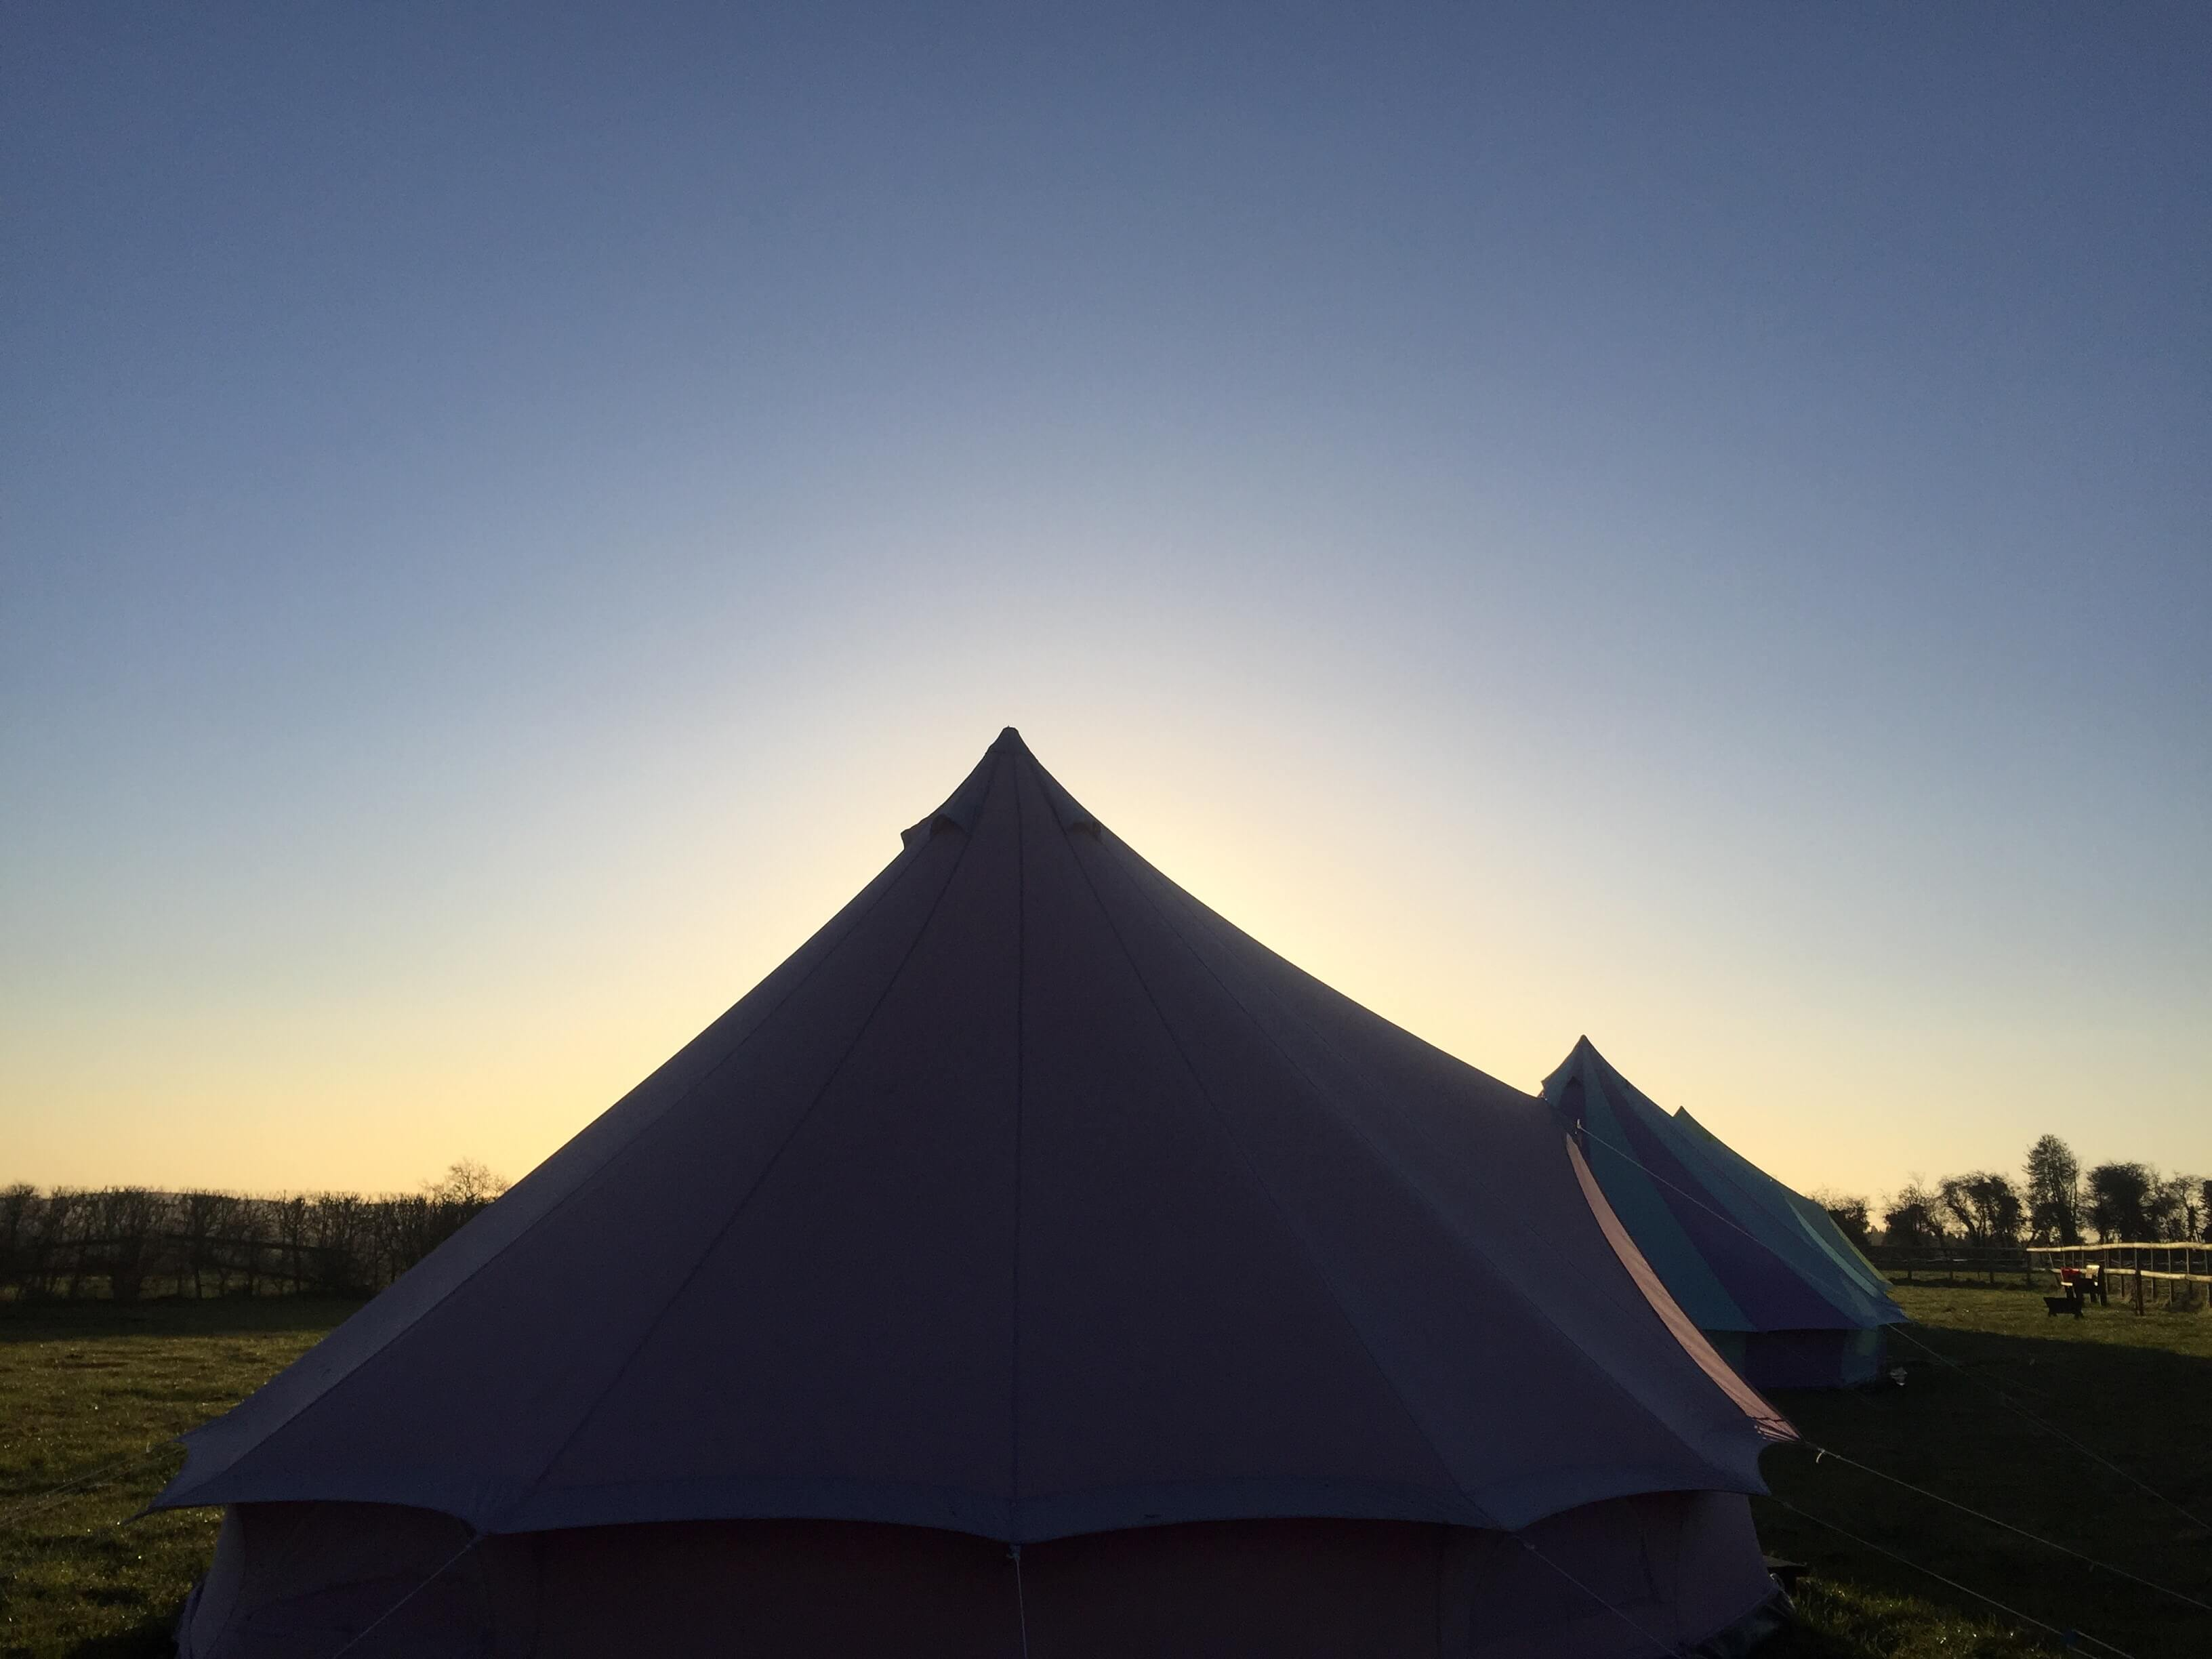 Beautiful morning at botany camping and Glamping Wiltshire